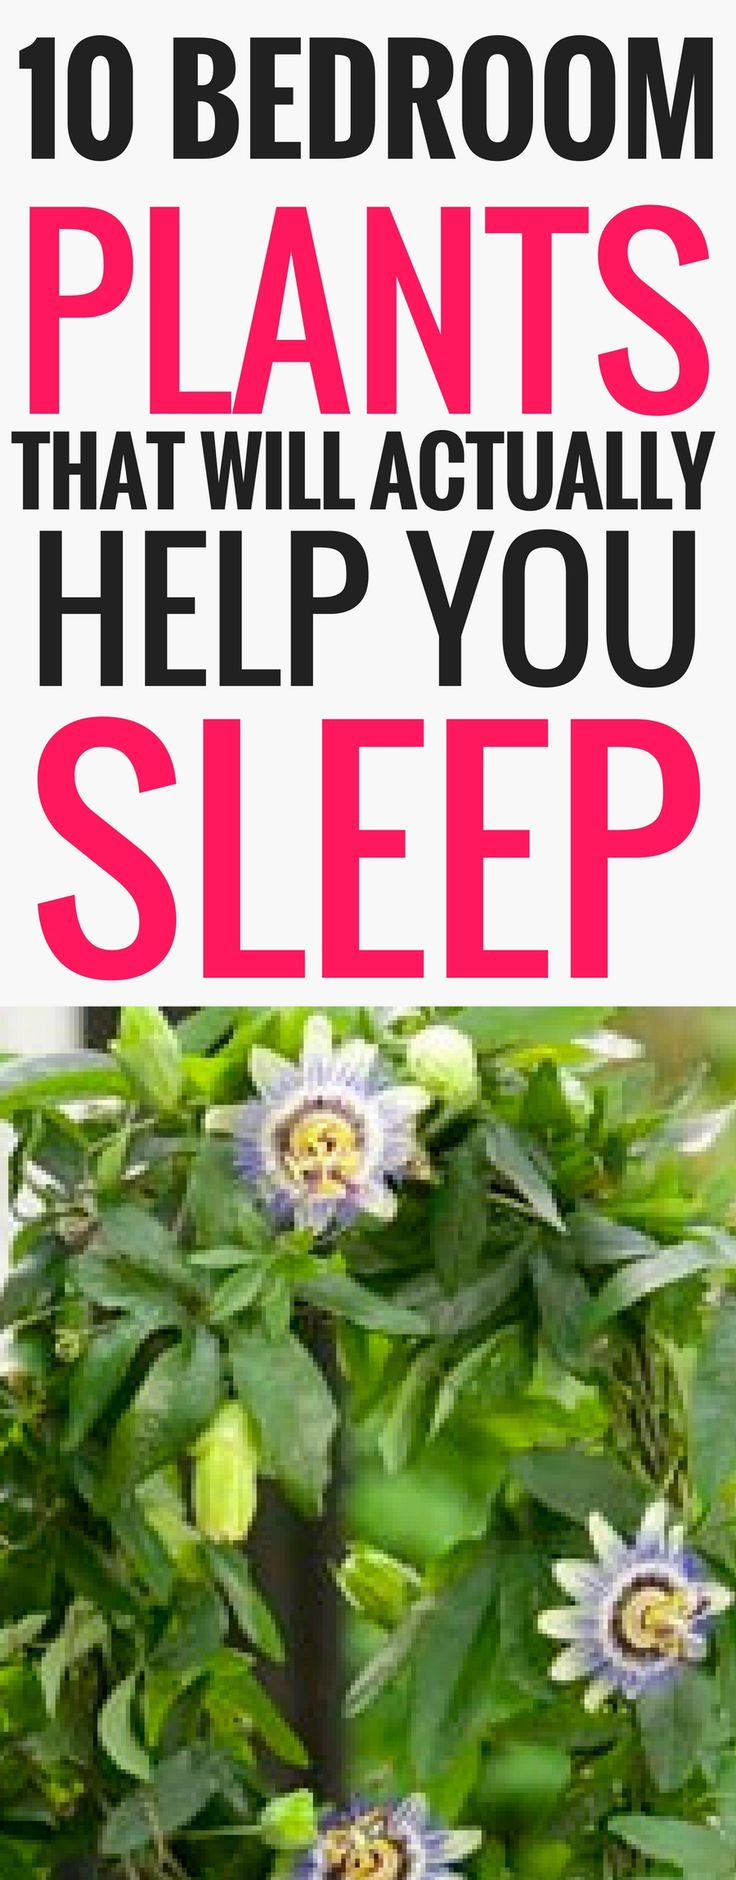 Insomnia is something I've struggled with my whole life- these are some of the BEST plants to help you sleep well at night! Get relief from insomnia by using these bedroom plants. (saving for later)